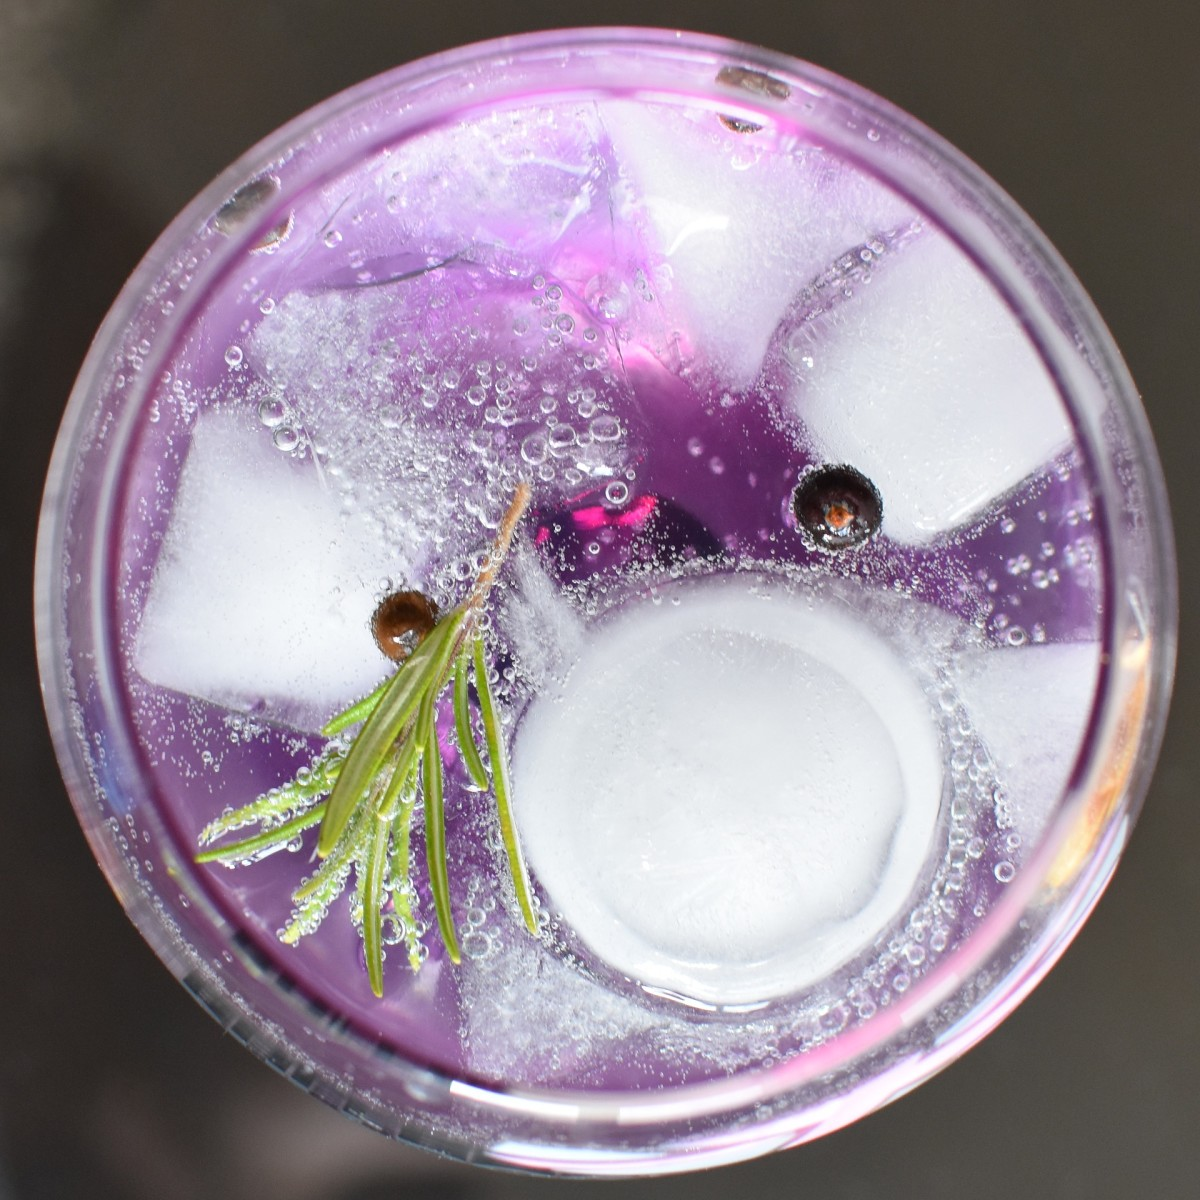 A striking gin-tonic made with purple gin and juniper berries